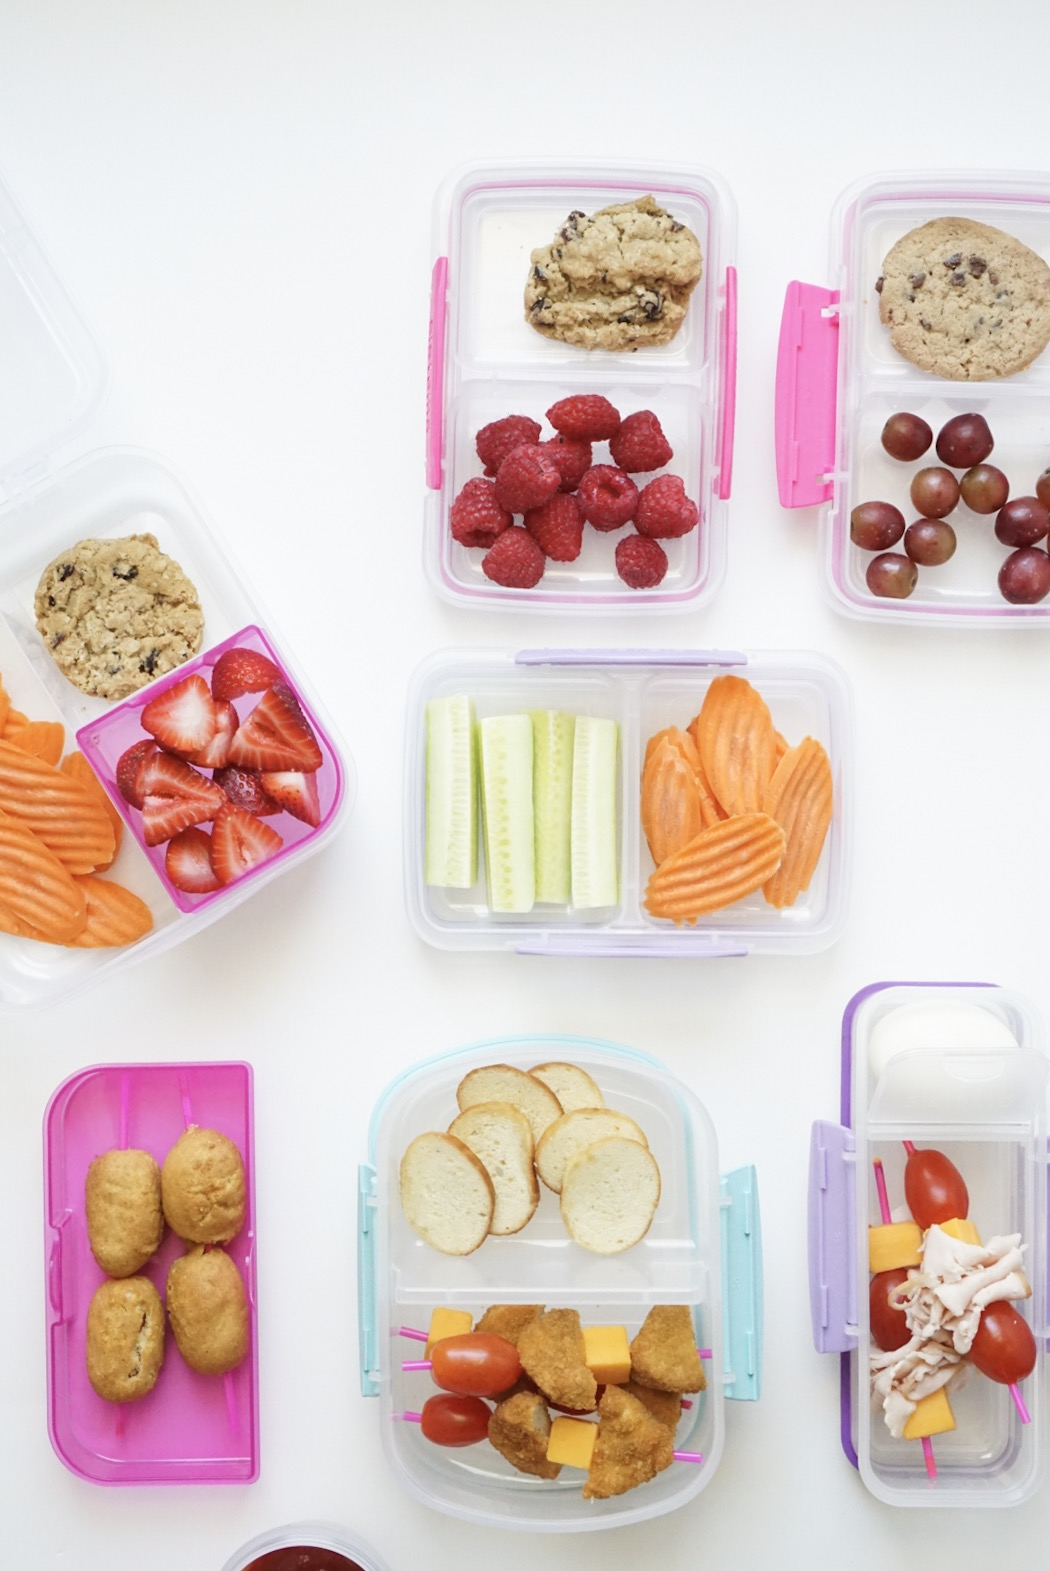 20 lunch ideas your kids will actually eat! (That aren't sandwiches!) Plus, how to meal prep school lunch for a stress-free week with a free printable. #schoollunch #bentolunch #mealprep #lunchmealprep #lunchboxmeals Click through for the details. | glitterinc.com | @glitterinc